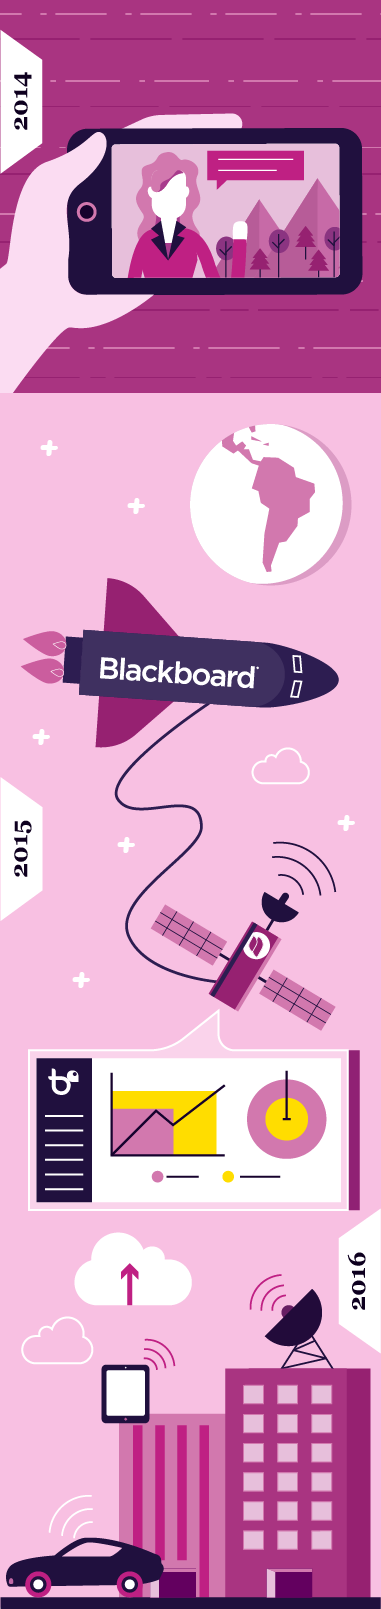 Illustration 2014 to 2016 - Blackboard Inc. adquiere Nivel Siete